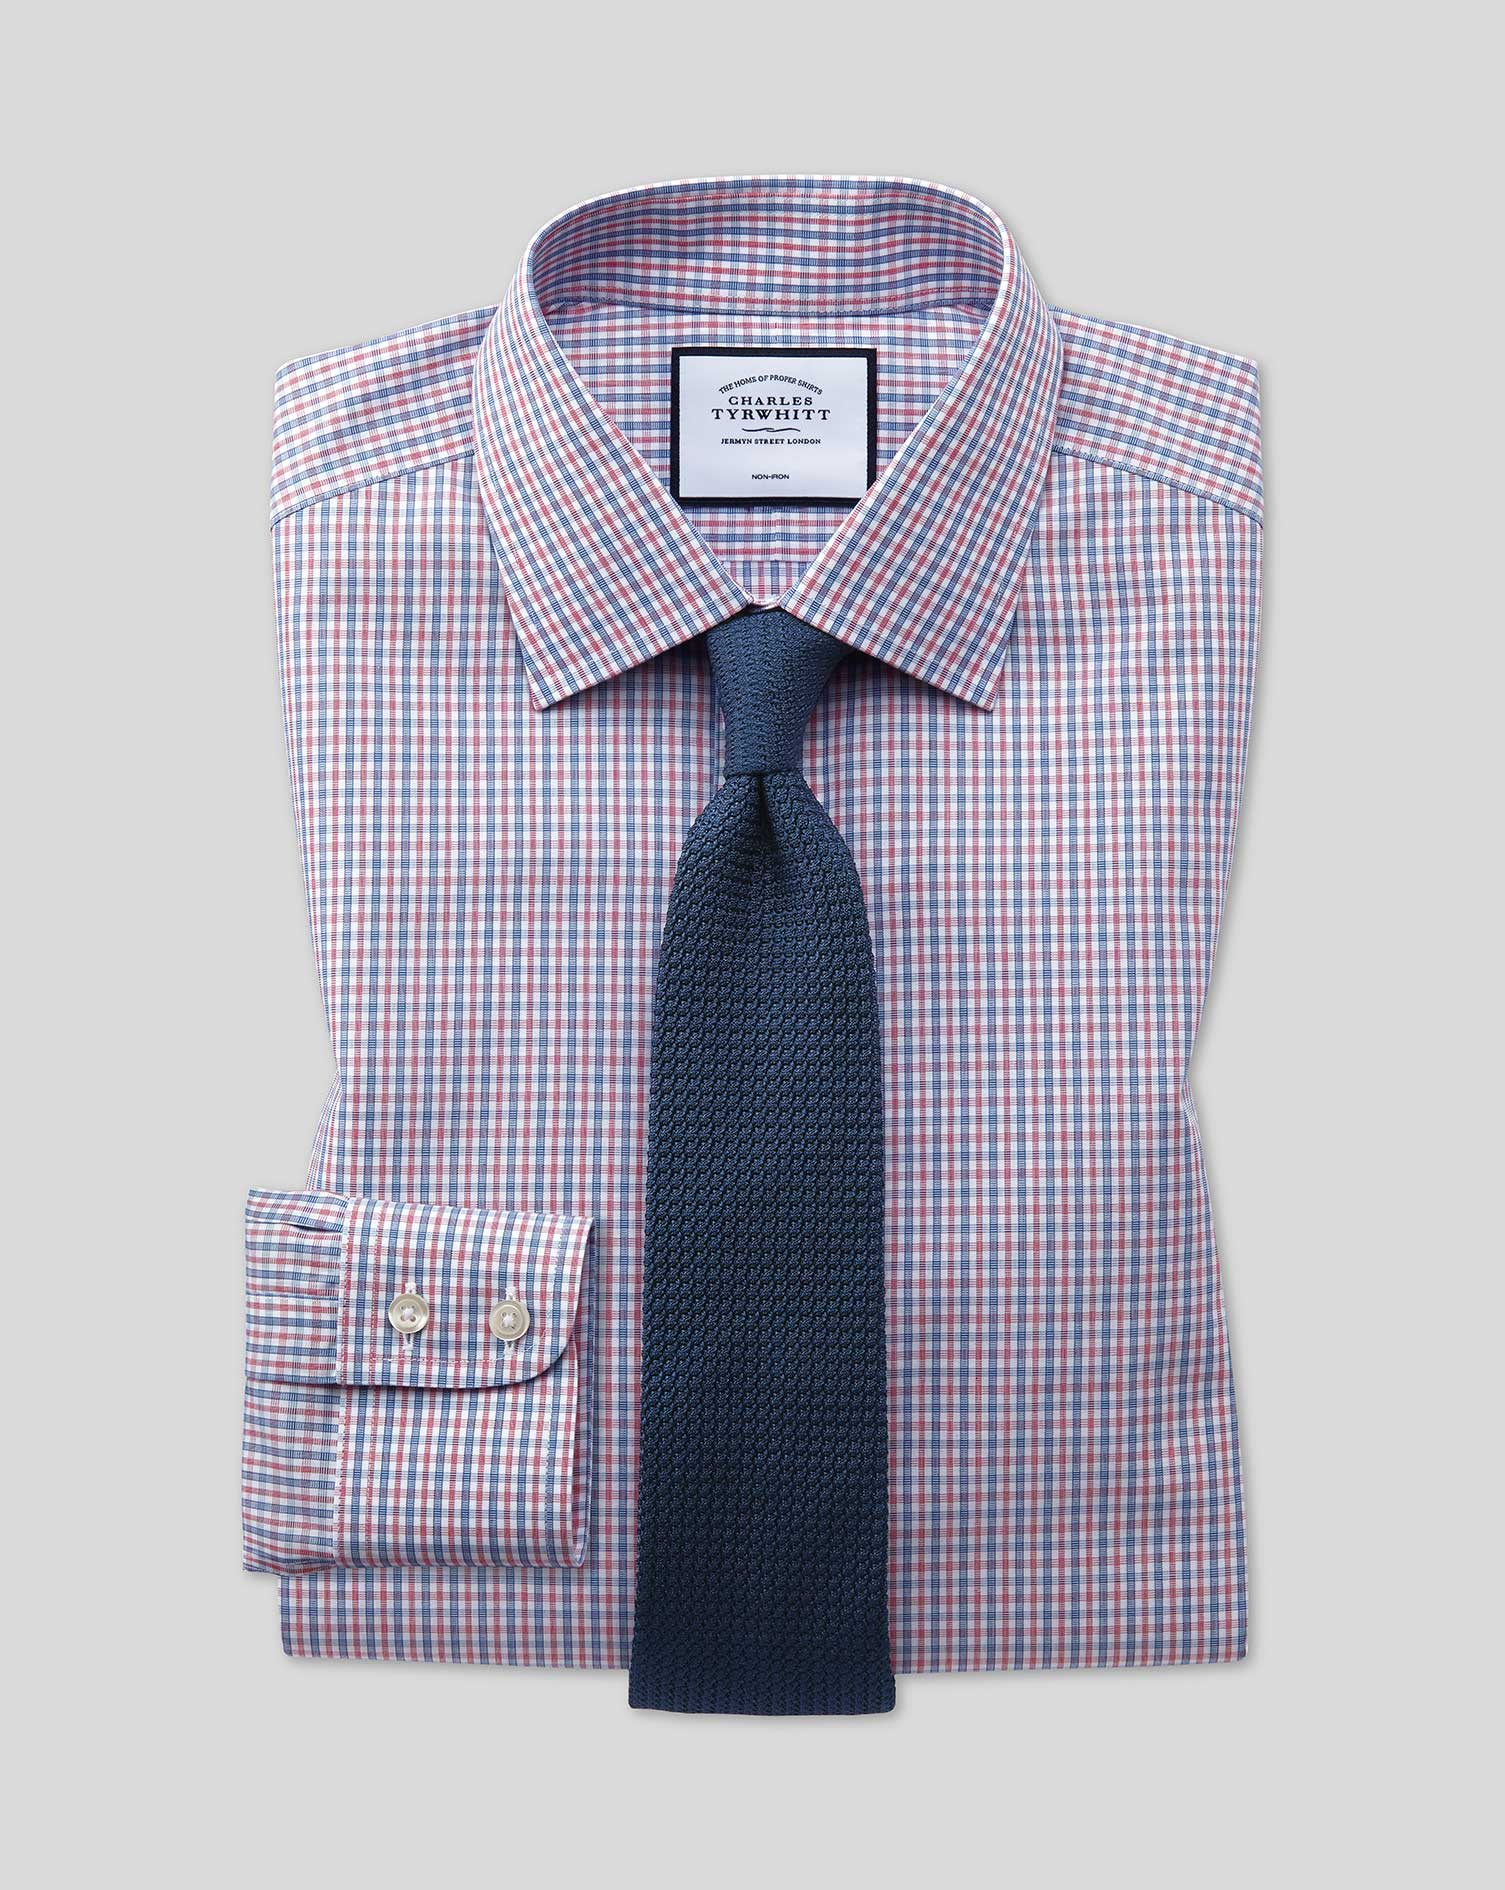 Classic Fit Non-Iron Blue and Red Check Cotton Formal Shirt Single Cuff Size 15.5/35 by Charles Tyrw